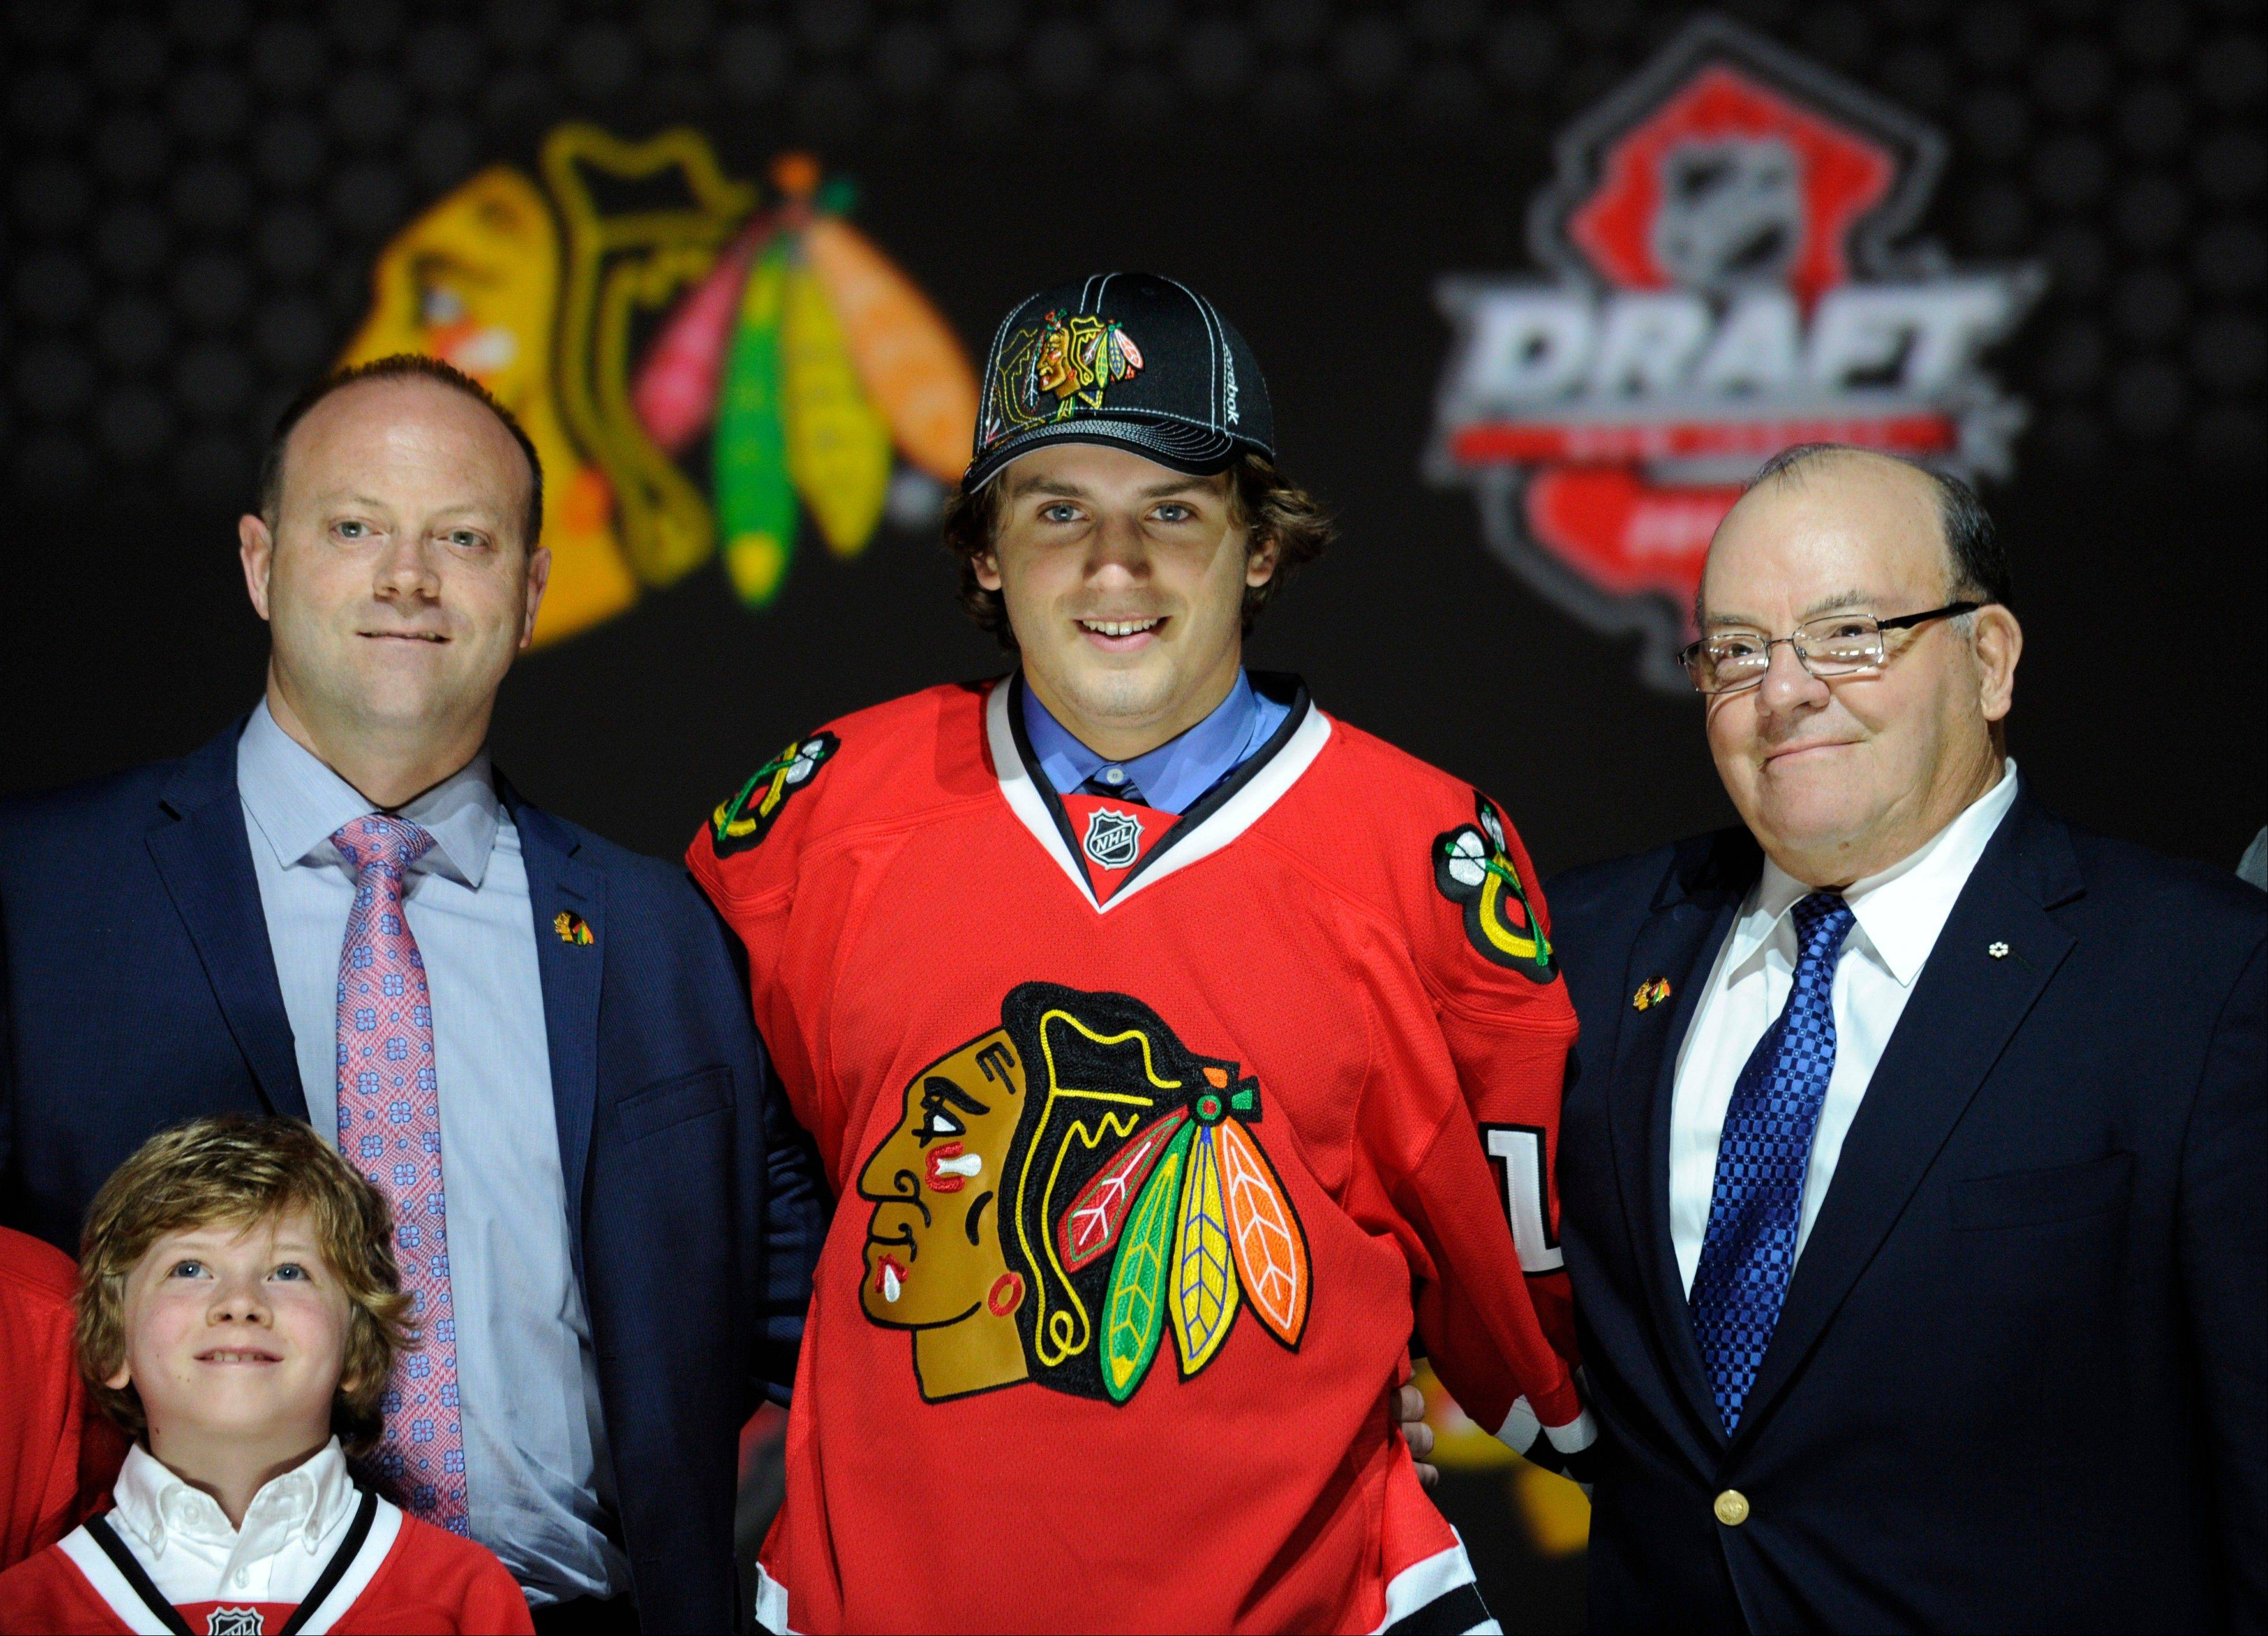 Ryan Hartman, a winger, stands with officials from the Chicago Blackhawks sweater after being chosen 30th overall in the first round of the NHL hockey draft, Sunday, June 30, 2013, in Newark, N.J.